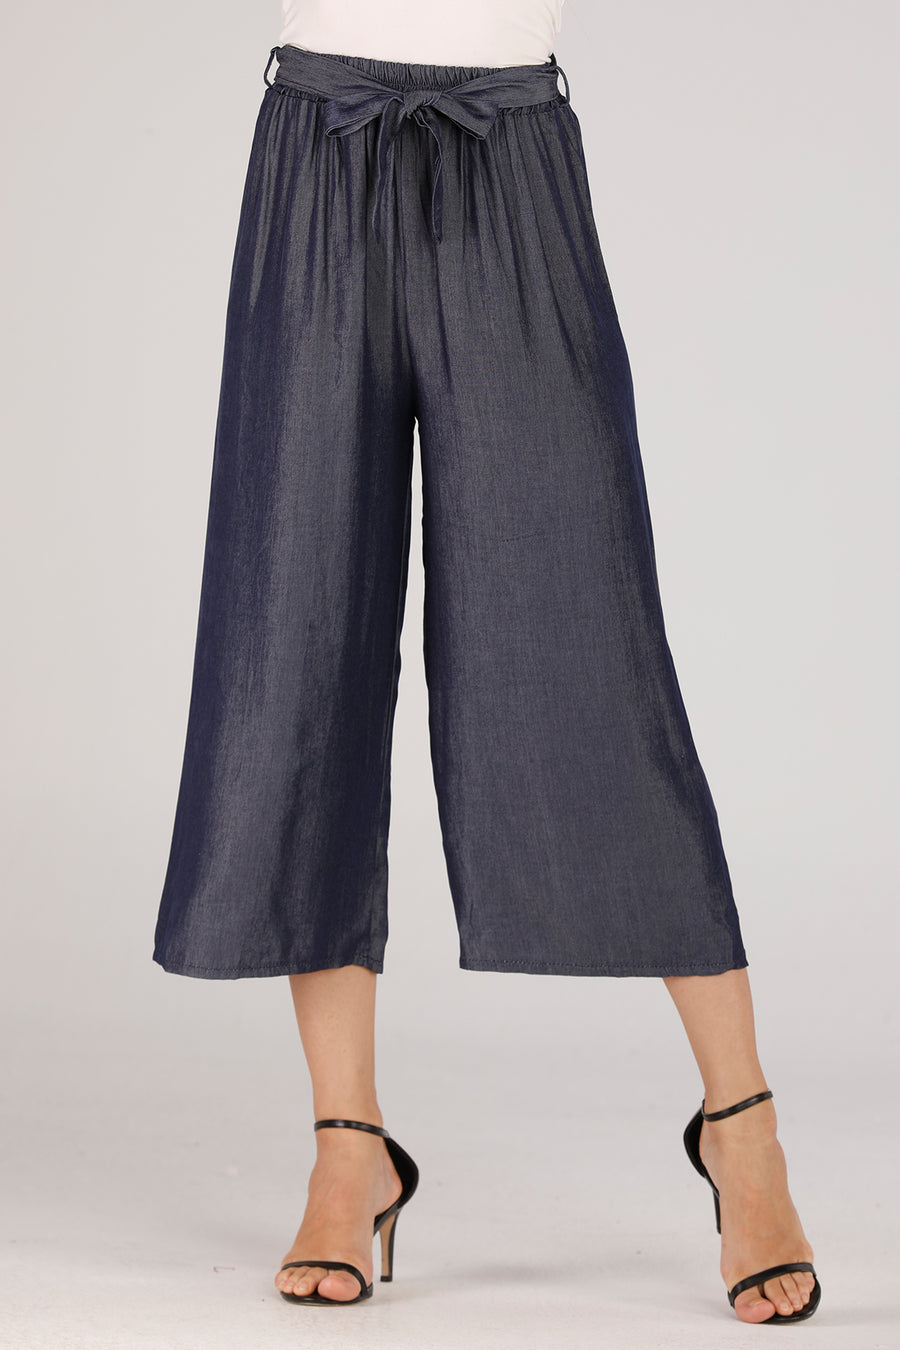 Mantra Pakistan Denim Flowy Pants | BOTTOMS